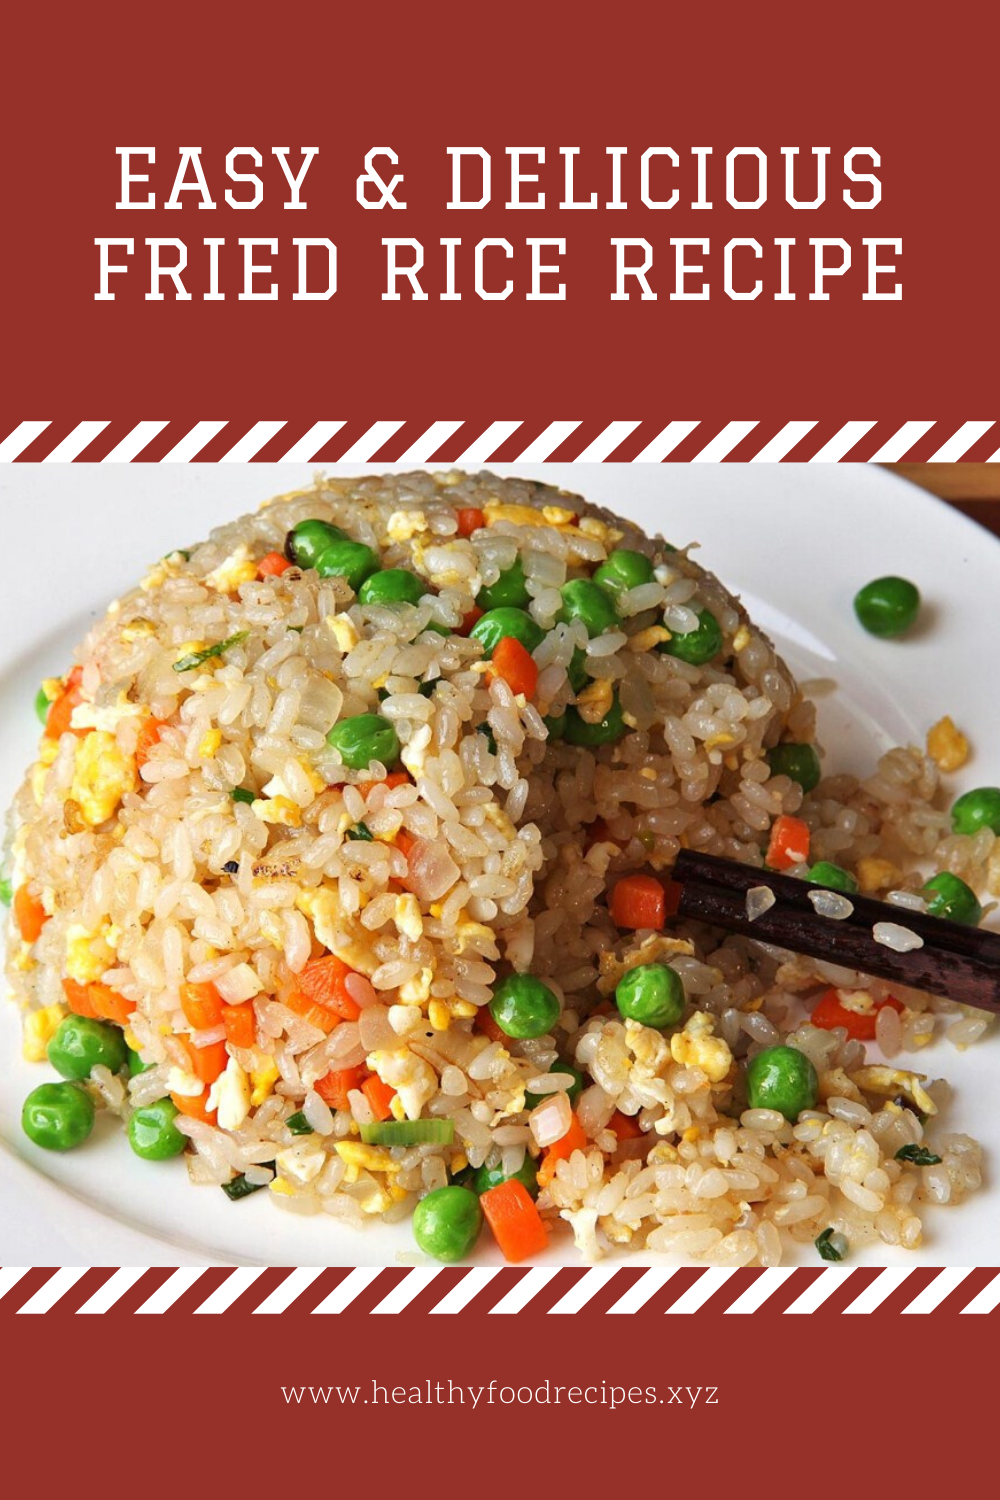 Easy & Delicious Fried Rice